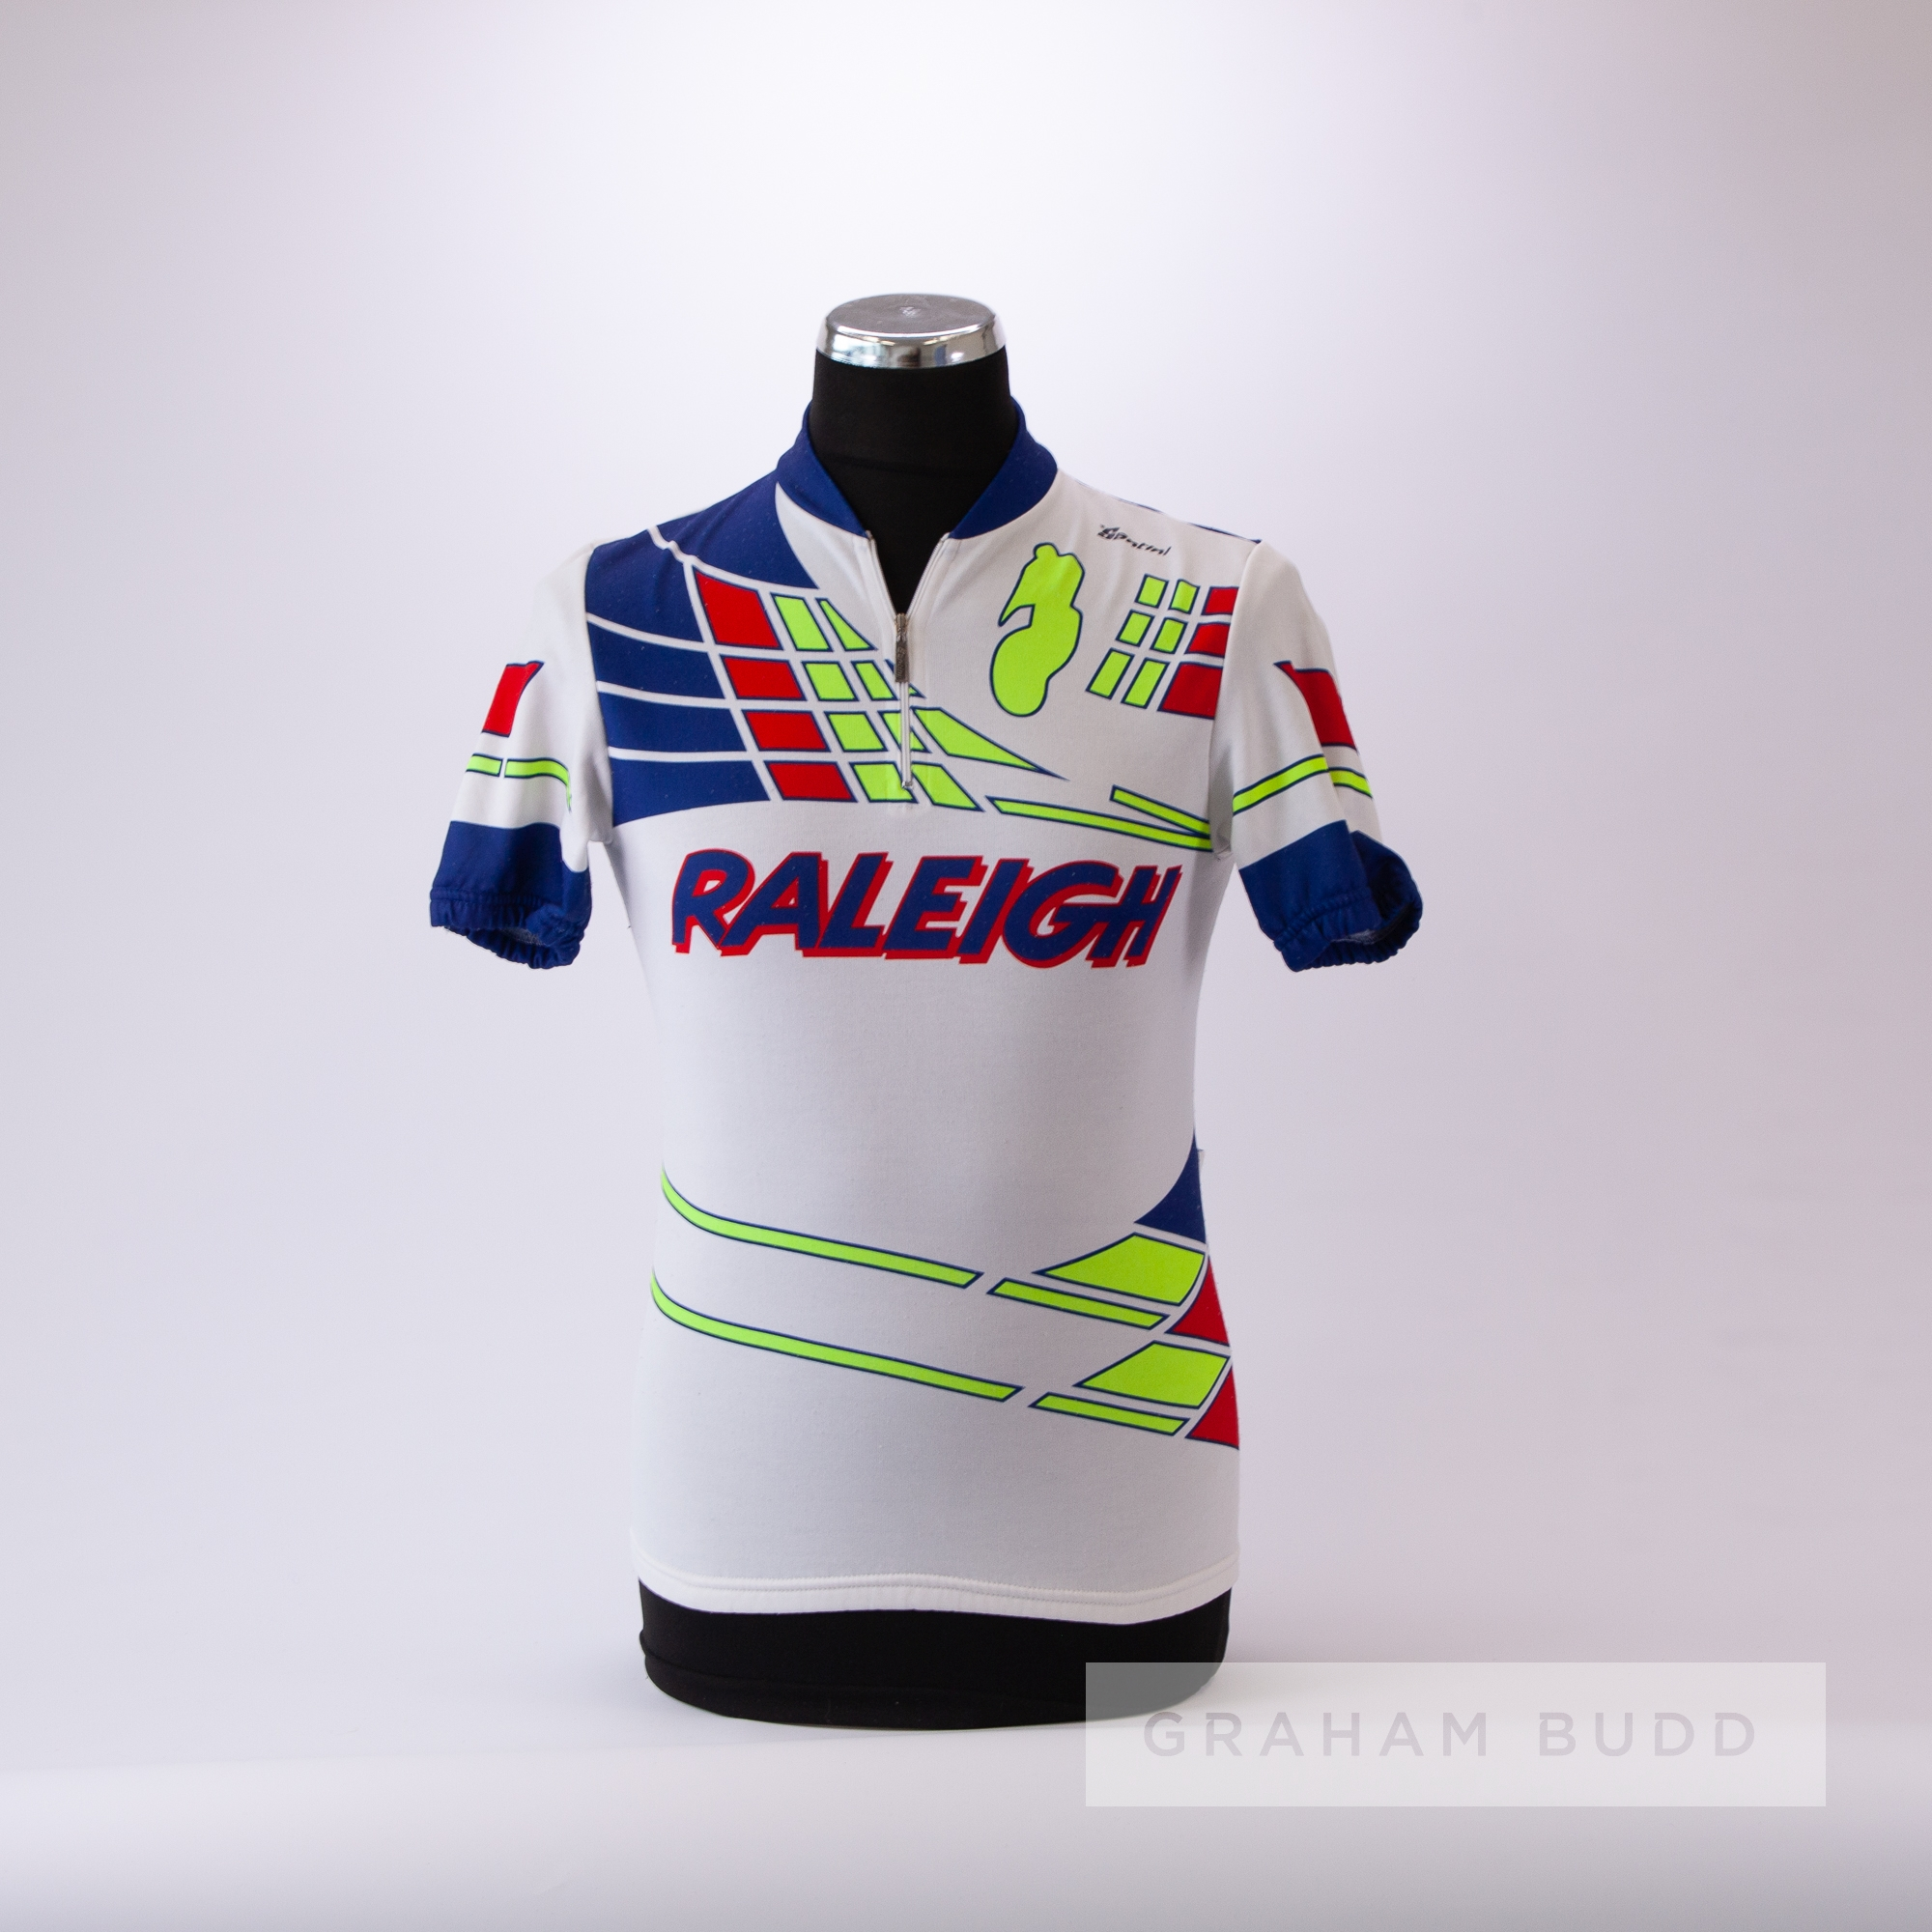 1986 white, navy, red and yellow Raleigh Cycling team race jersey, scarce, polyester short-sleeved - Image 3 of 4